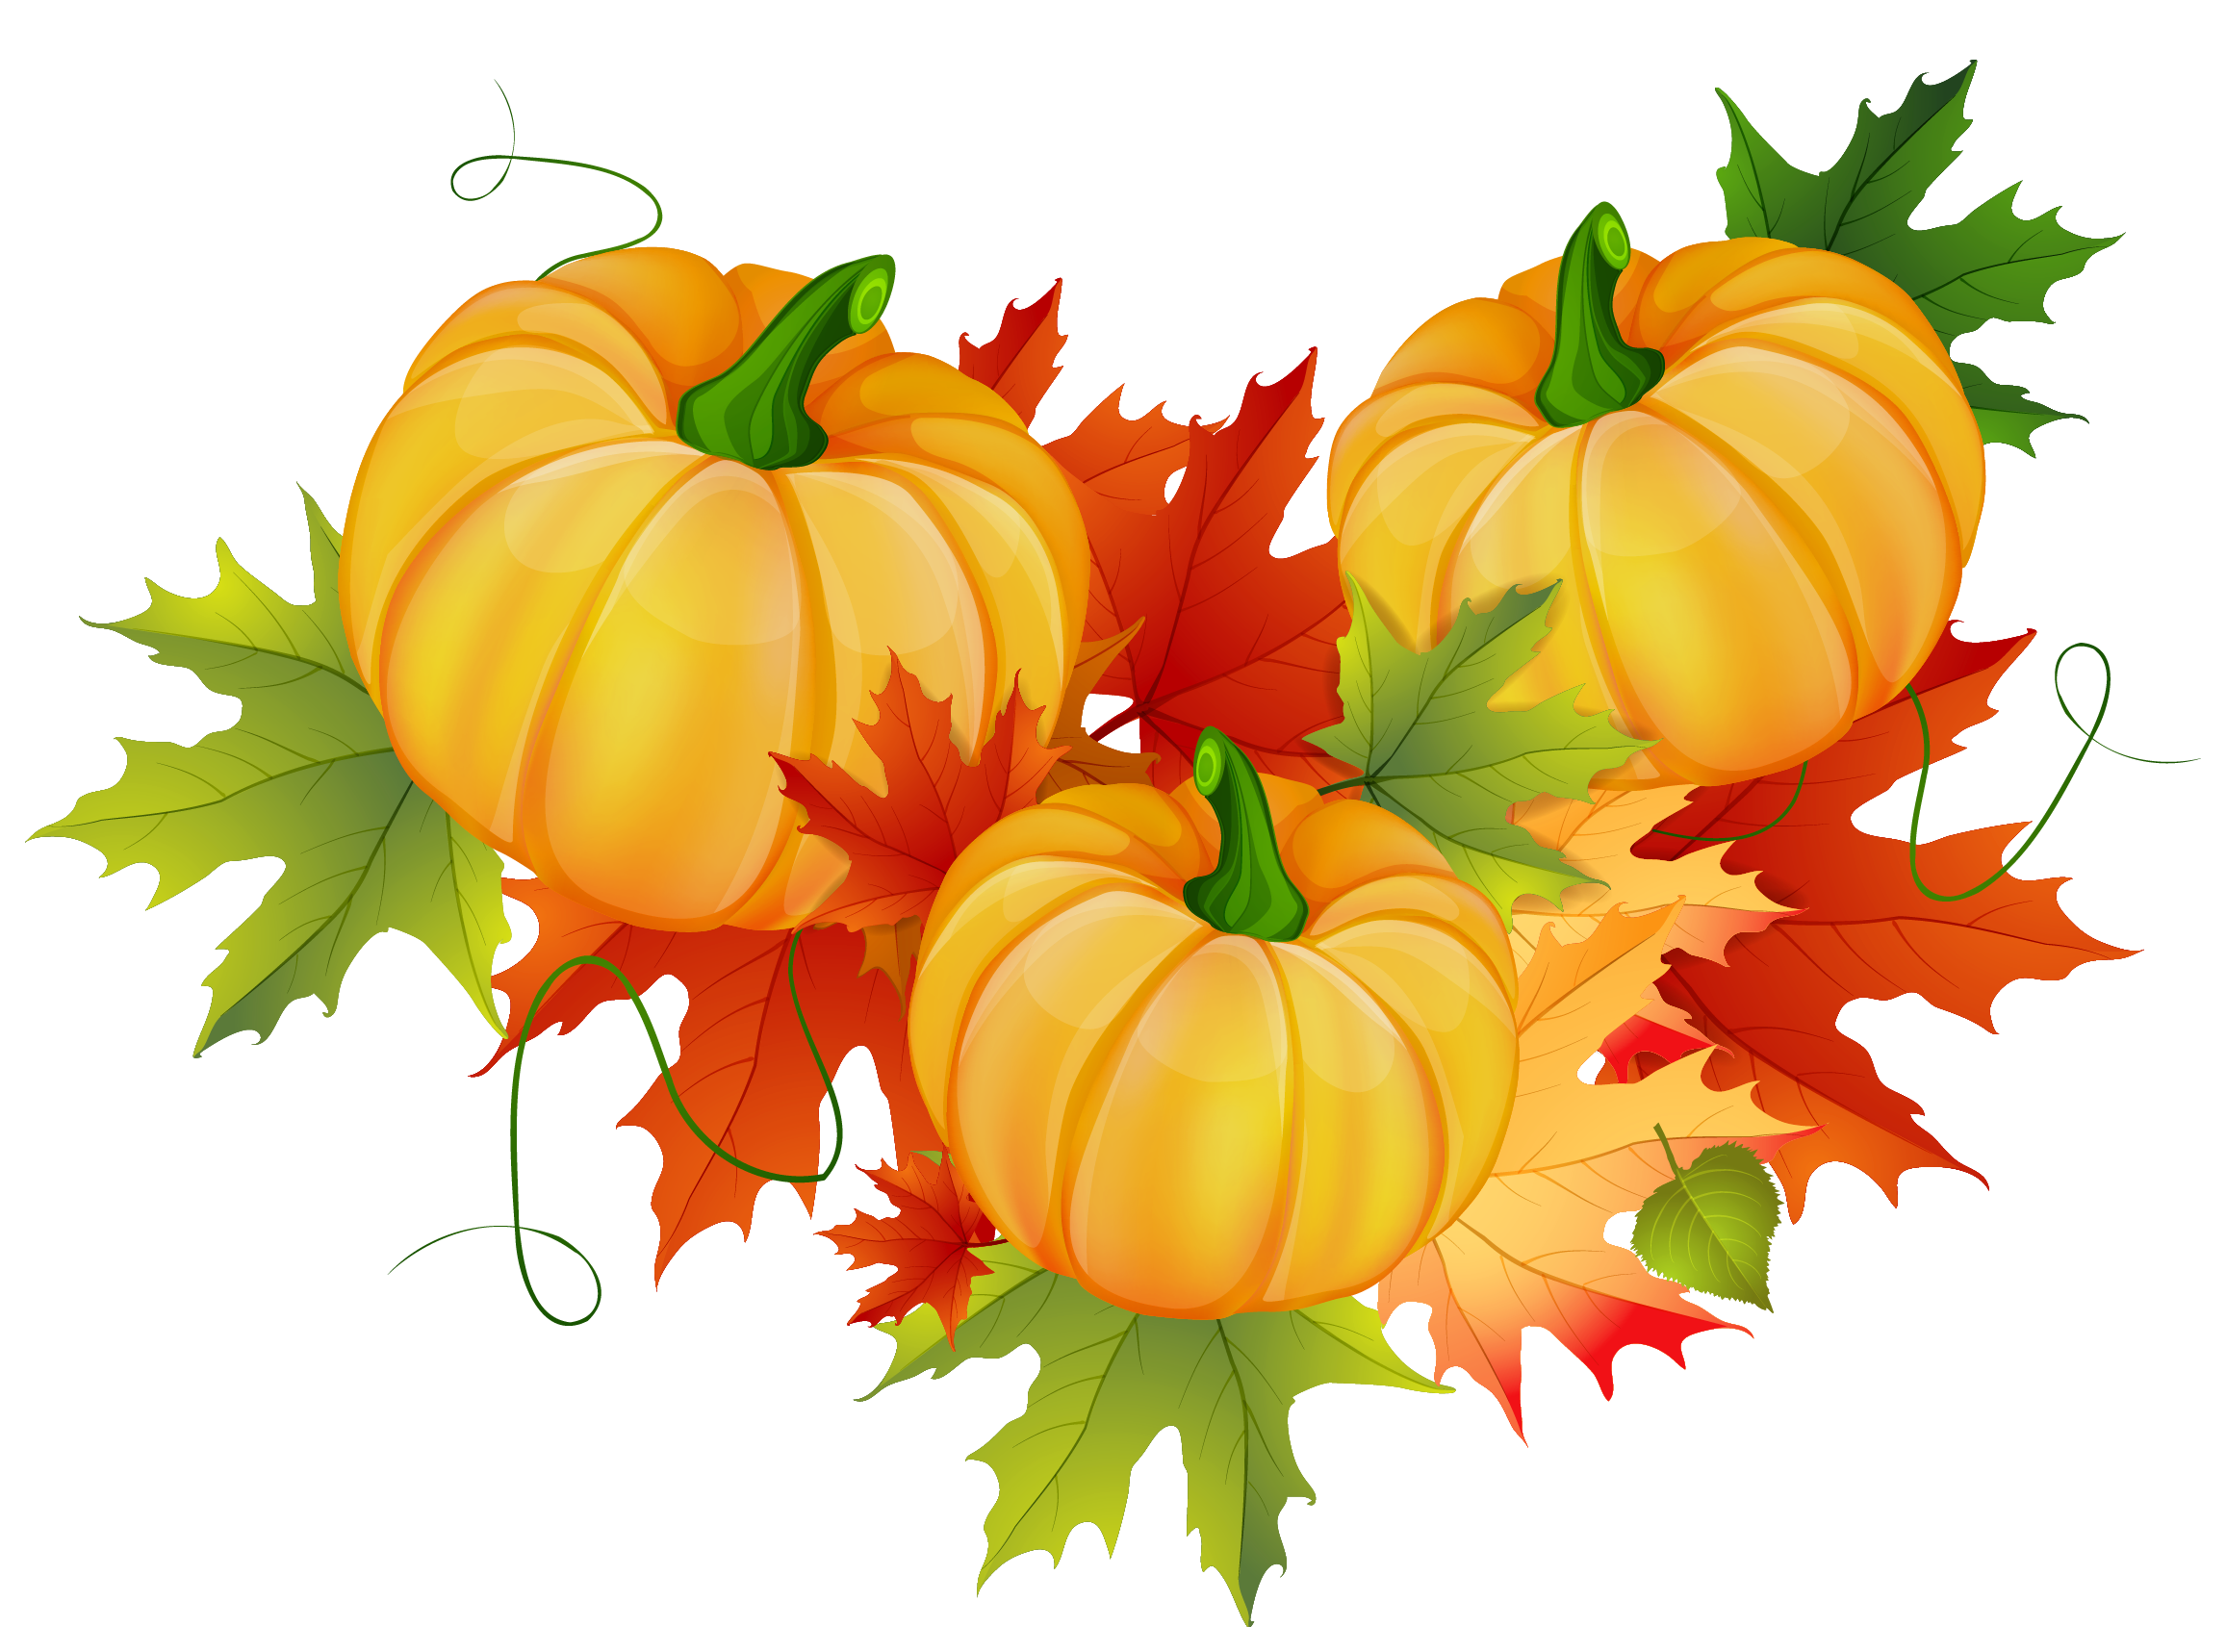 Free clipart for halloween and thanksgiving png free library Thanksgiving Pumpkin Decoration PNG Clipart | Gallery Yopriceville ... png free library